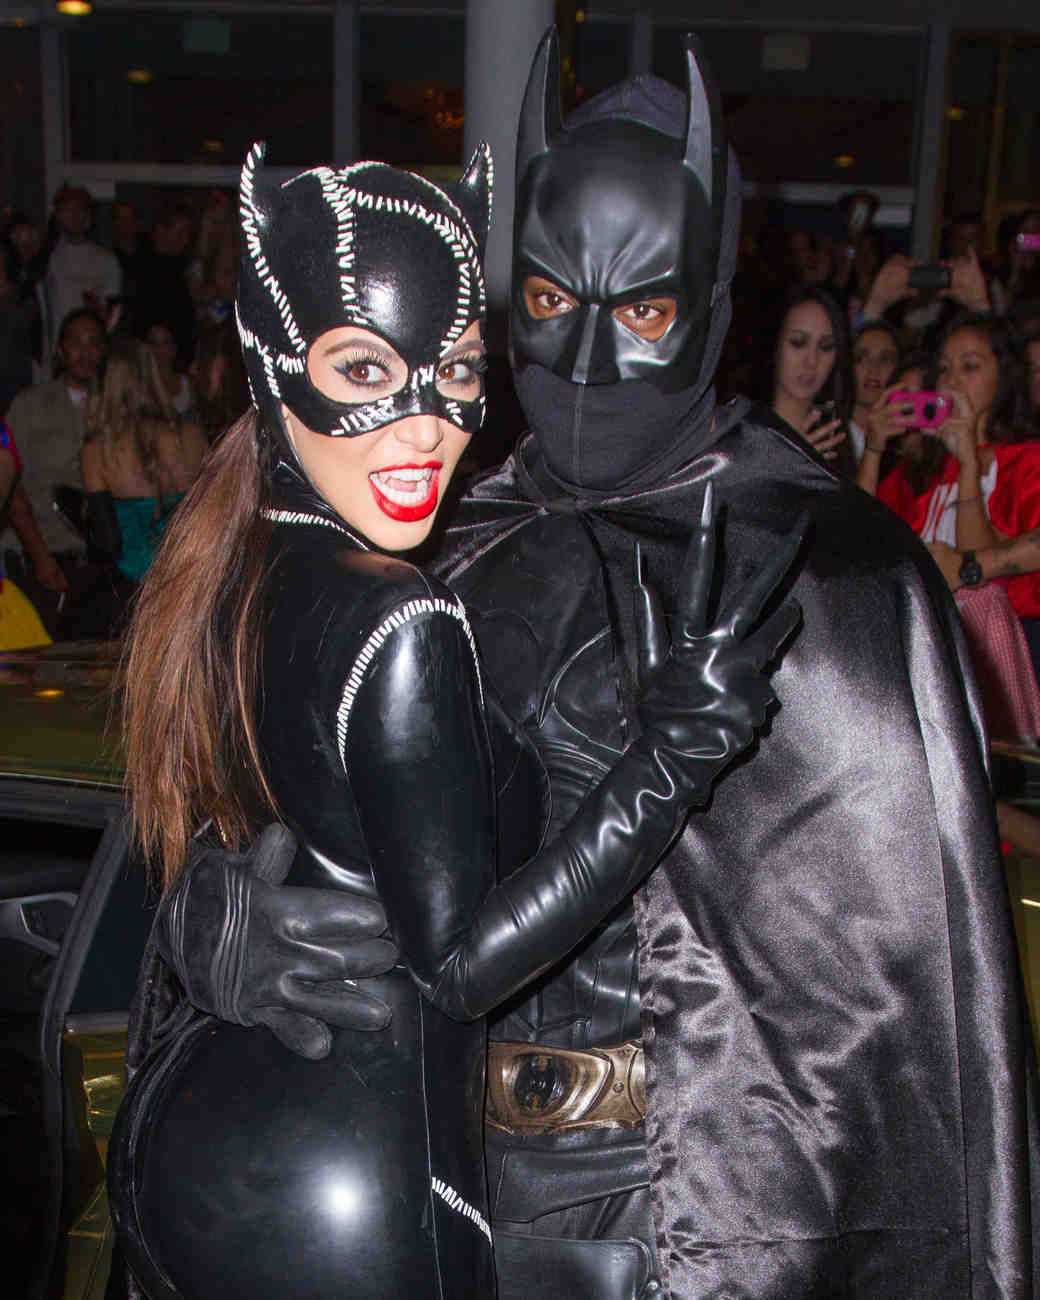 Kim Kardashian and Kanye West in Catwoman and Batman Halloween Costumes